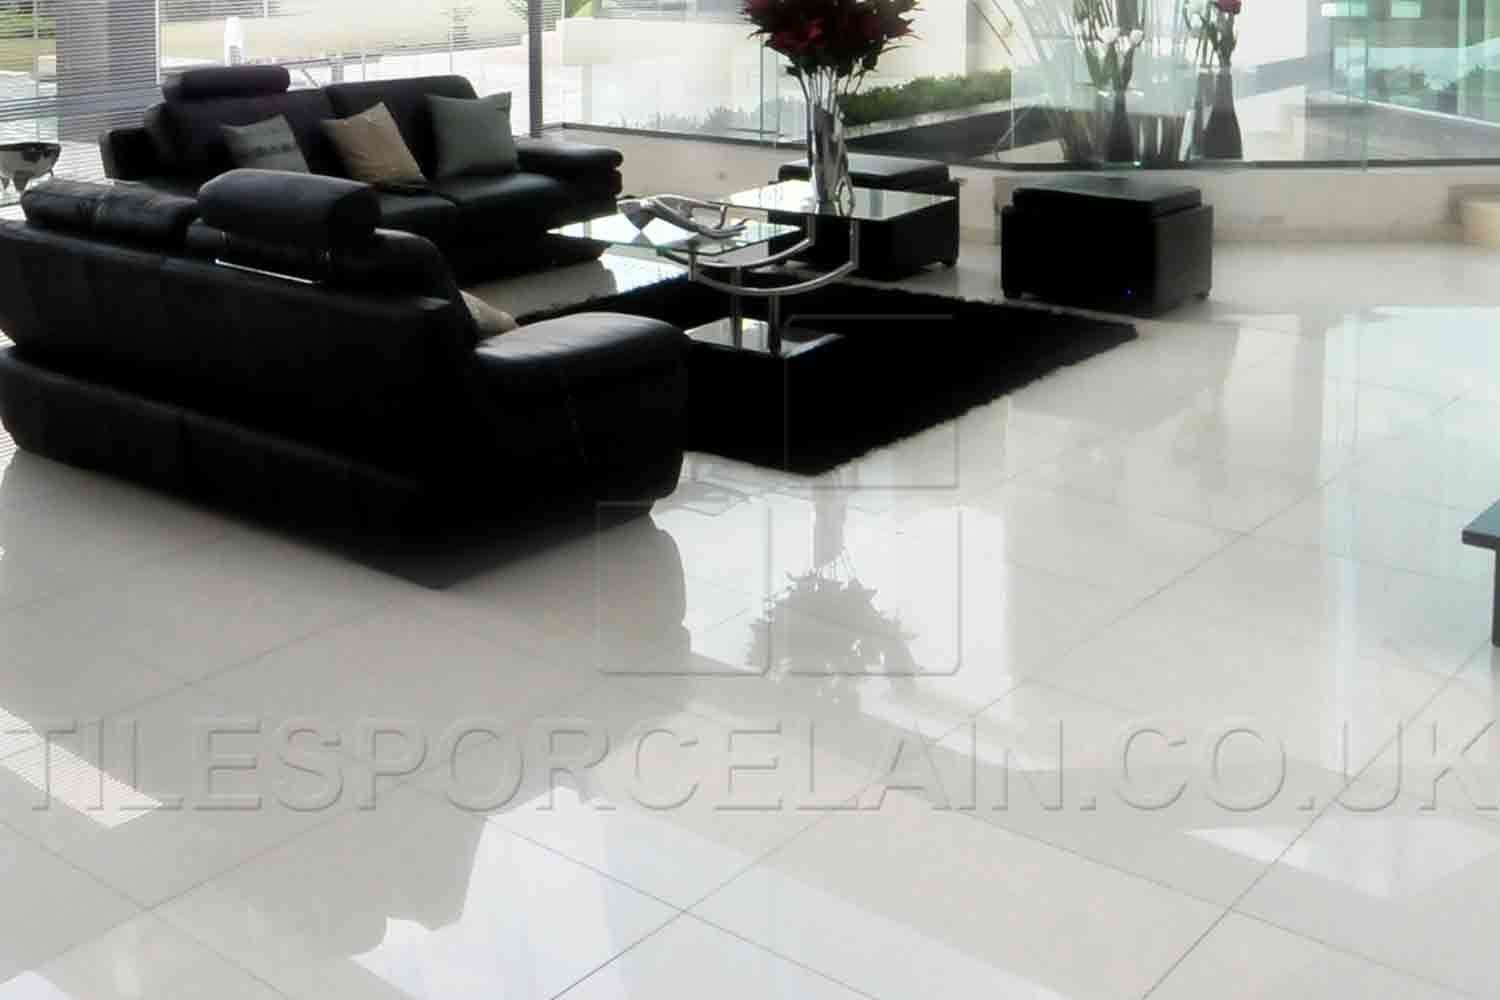 Floor Tiles Prices Interior Design Contemporary Tile Design